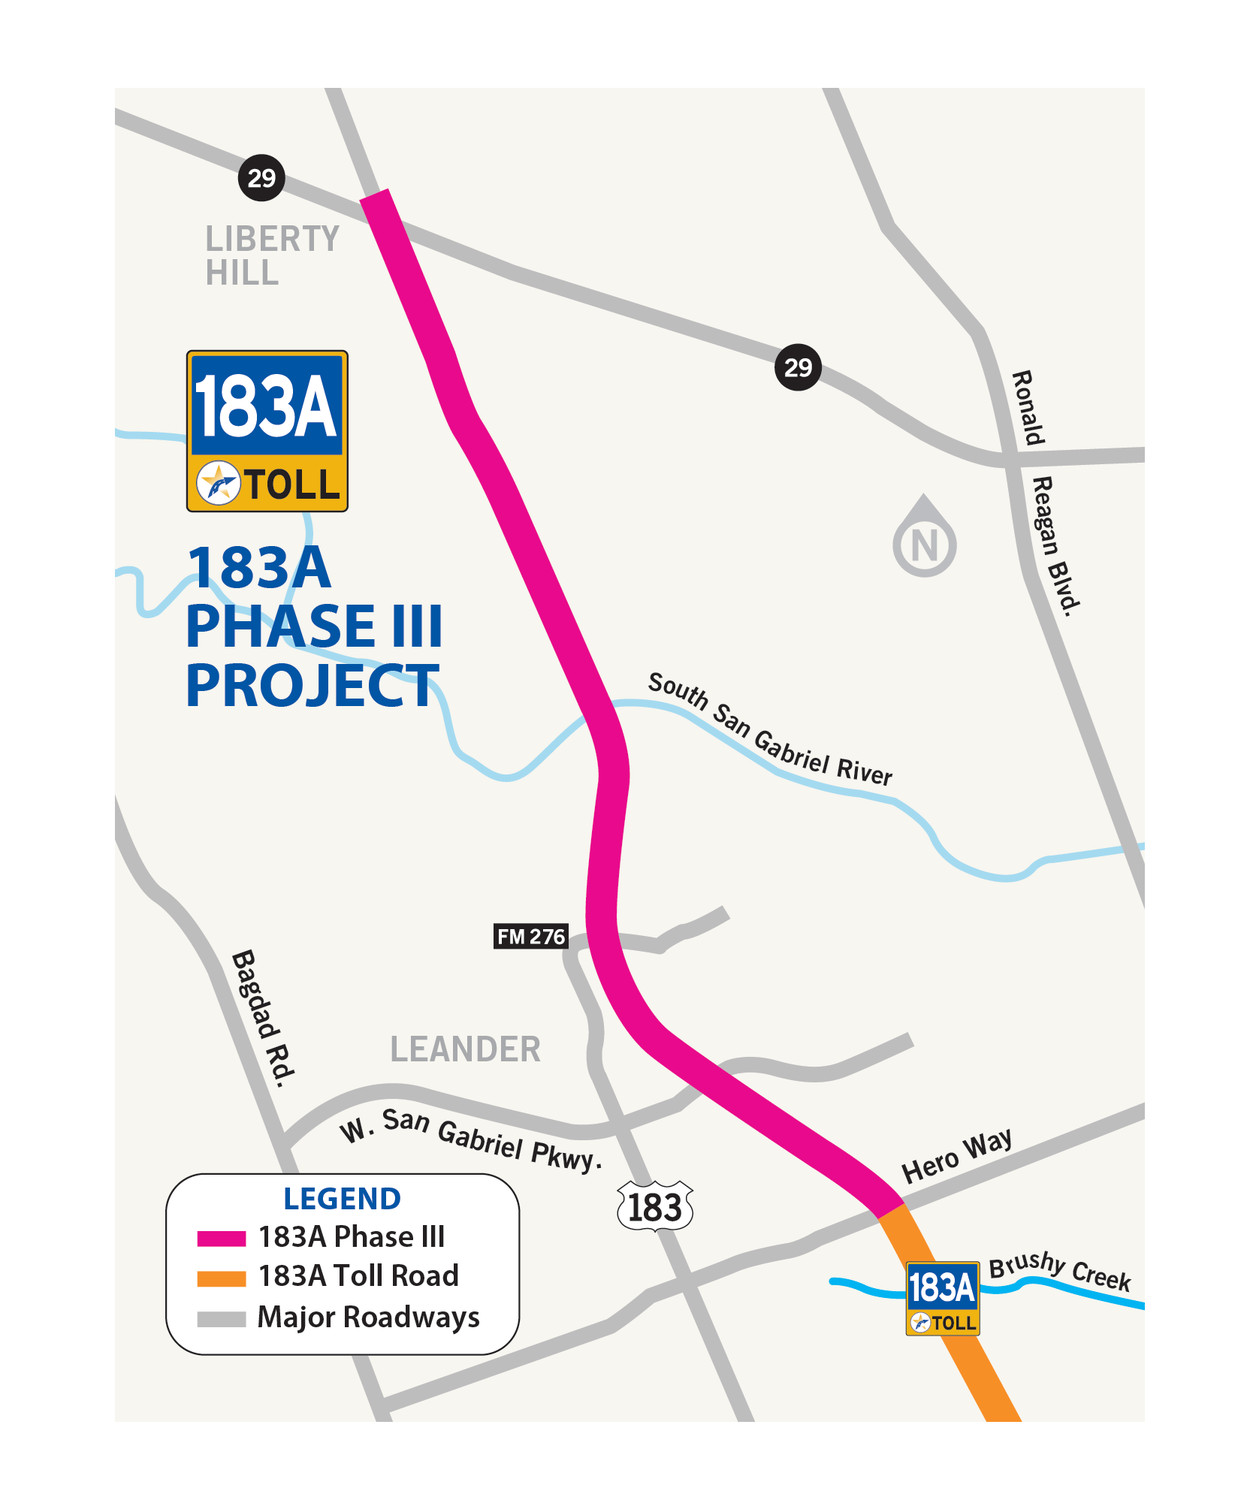 This map excerpt shows the 6-mile stretch of roadway where CTRMA proposes extending 183A from Leander to Liberty Hill.